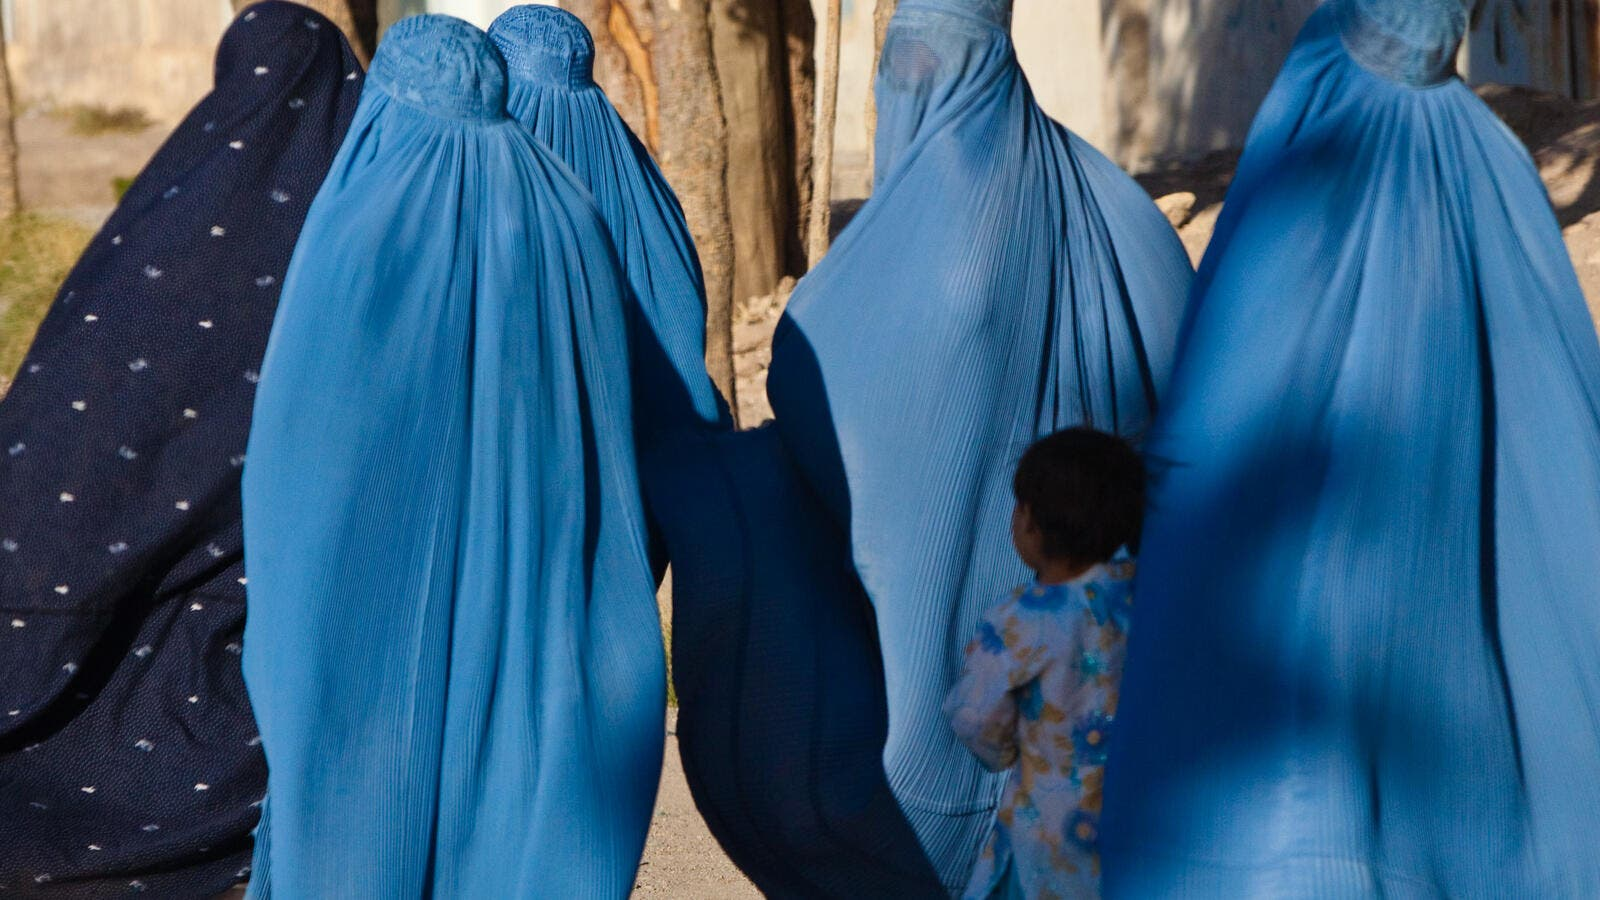 Women wearing the full burqa covering in Herat, Afghanistan (Wikimedia Commons)